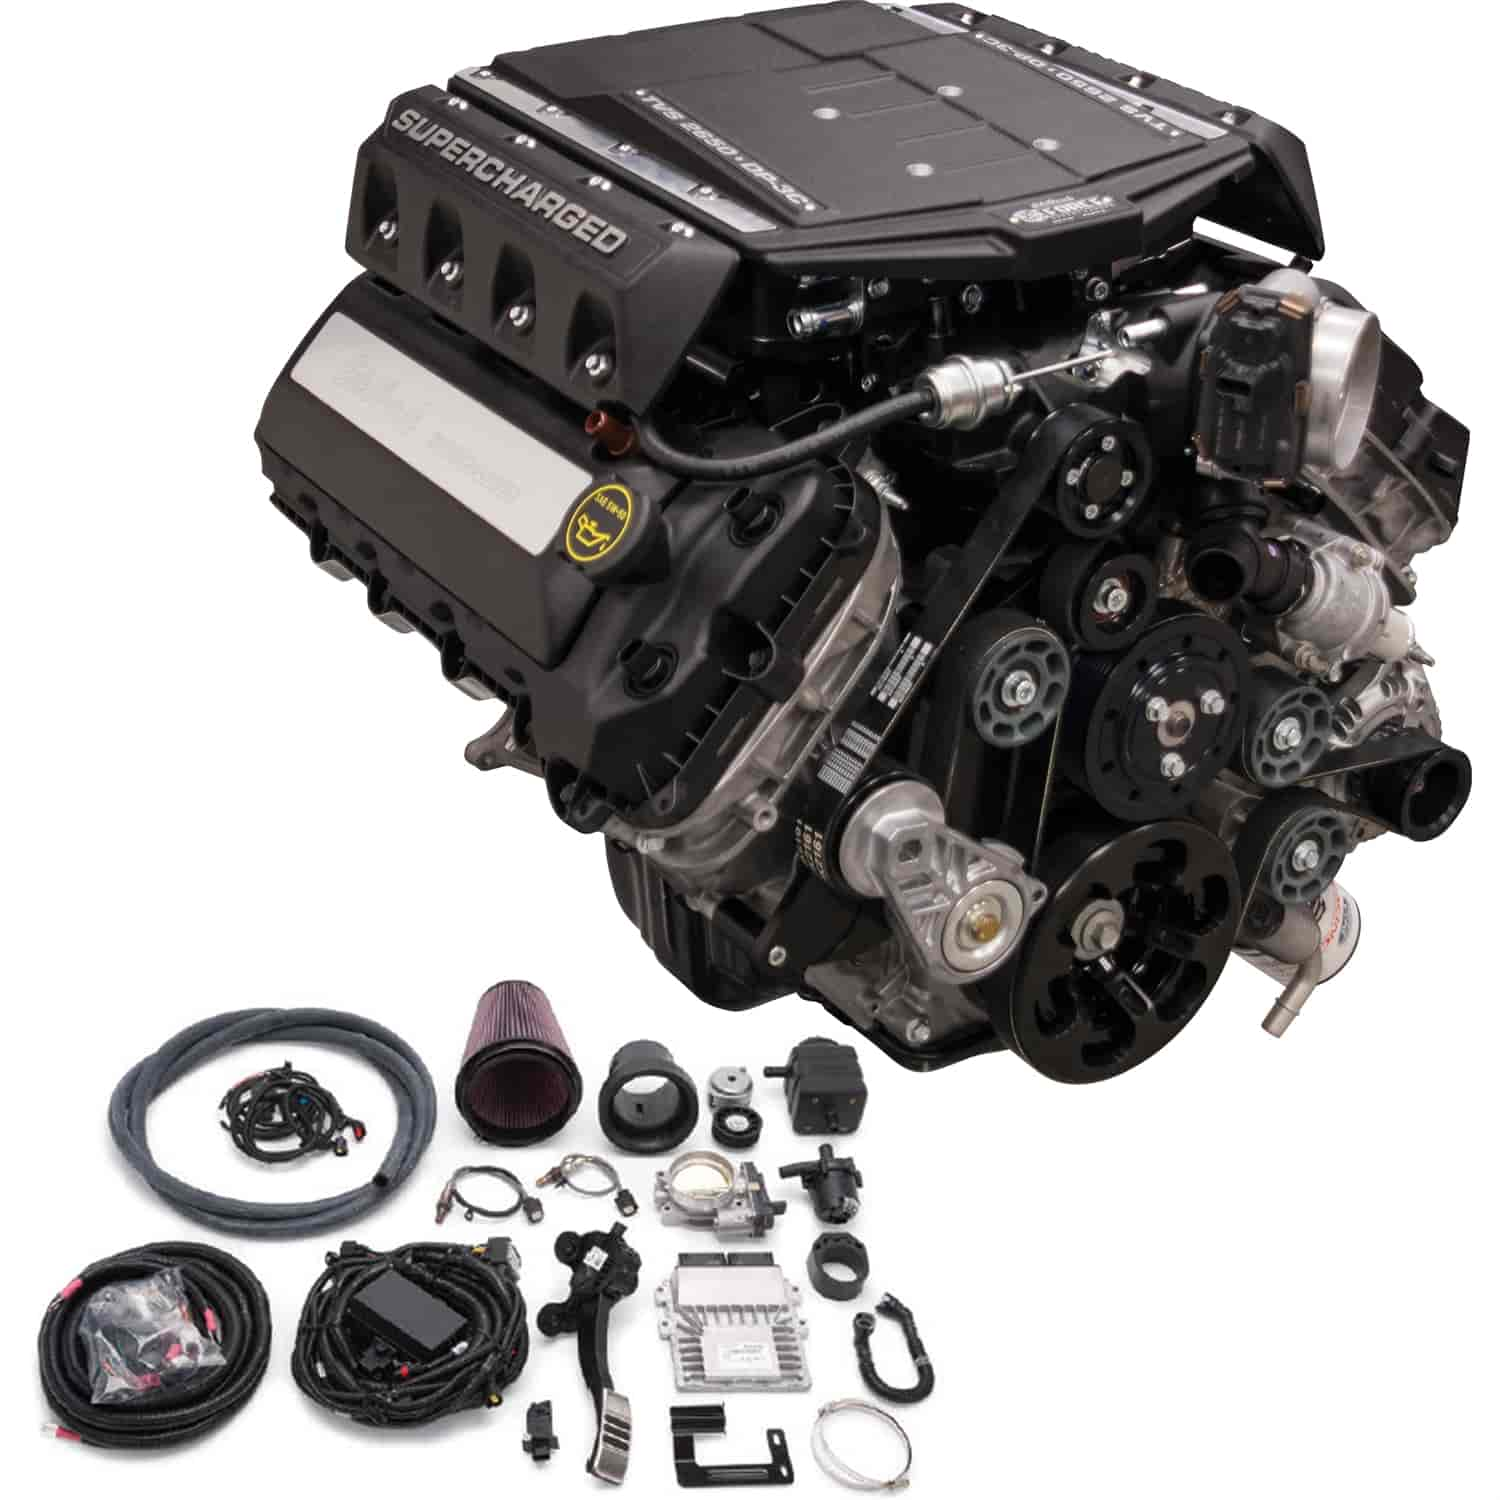 Edelbrock E-Force Supercharged Ford Coyote 5 0L Crate Engine